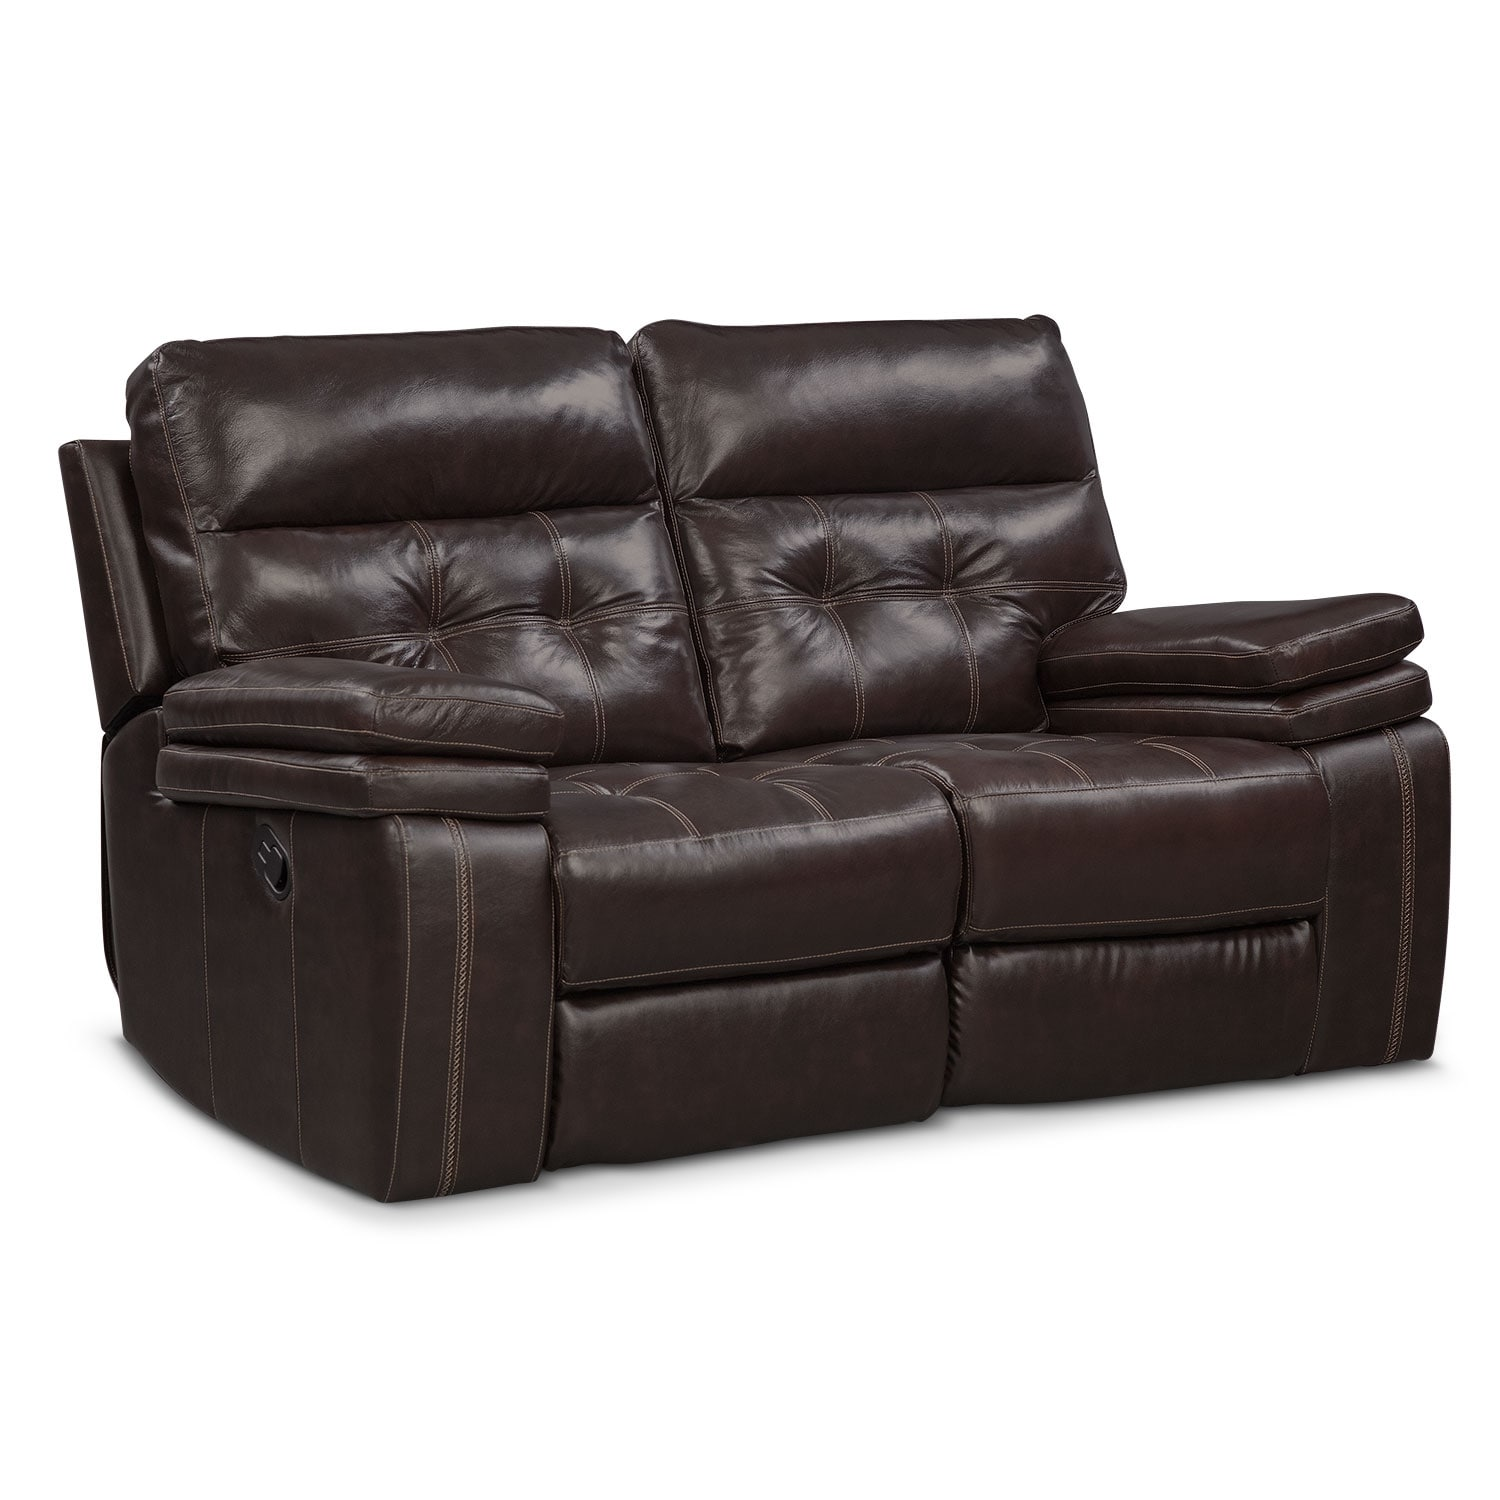 [Brisco Brown Manual Reclining Loveseat]